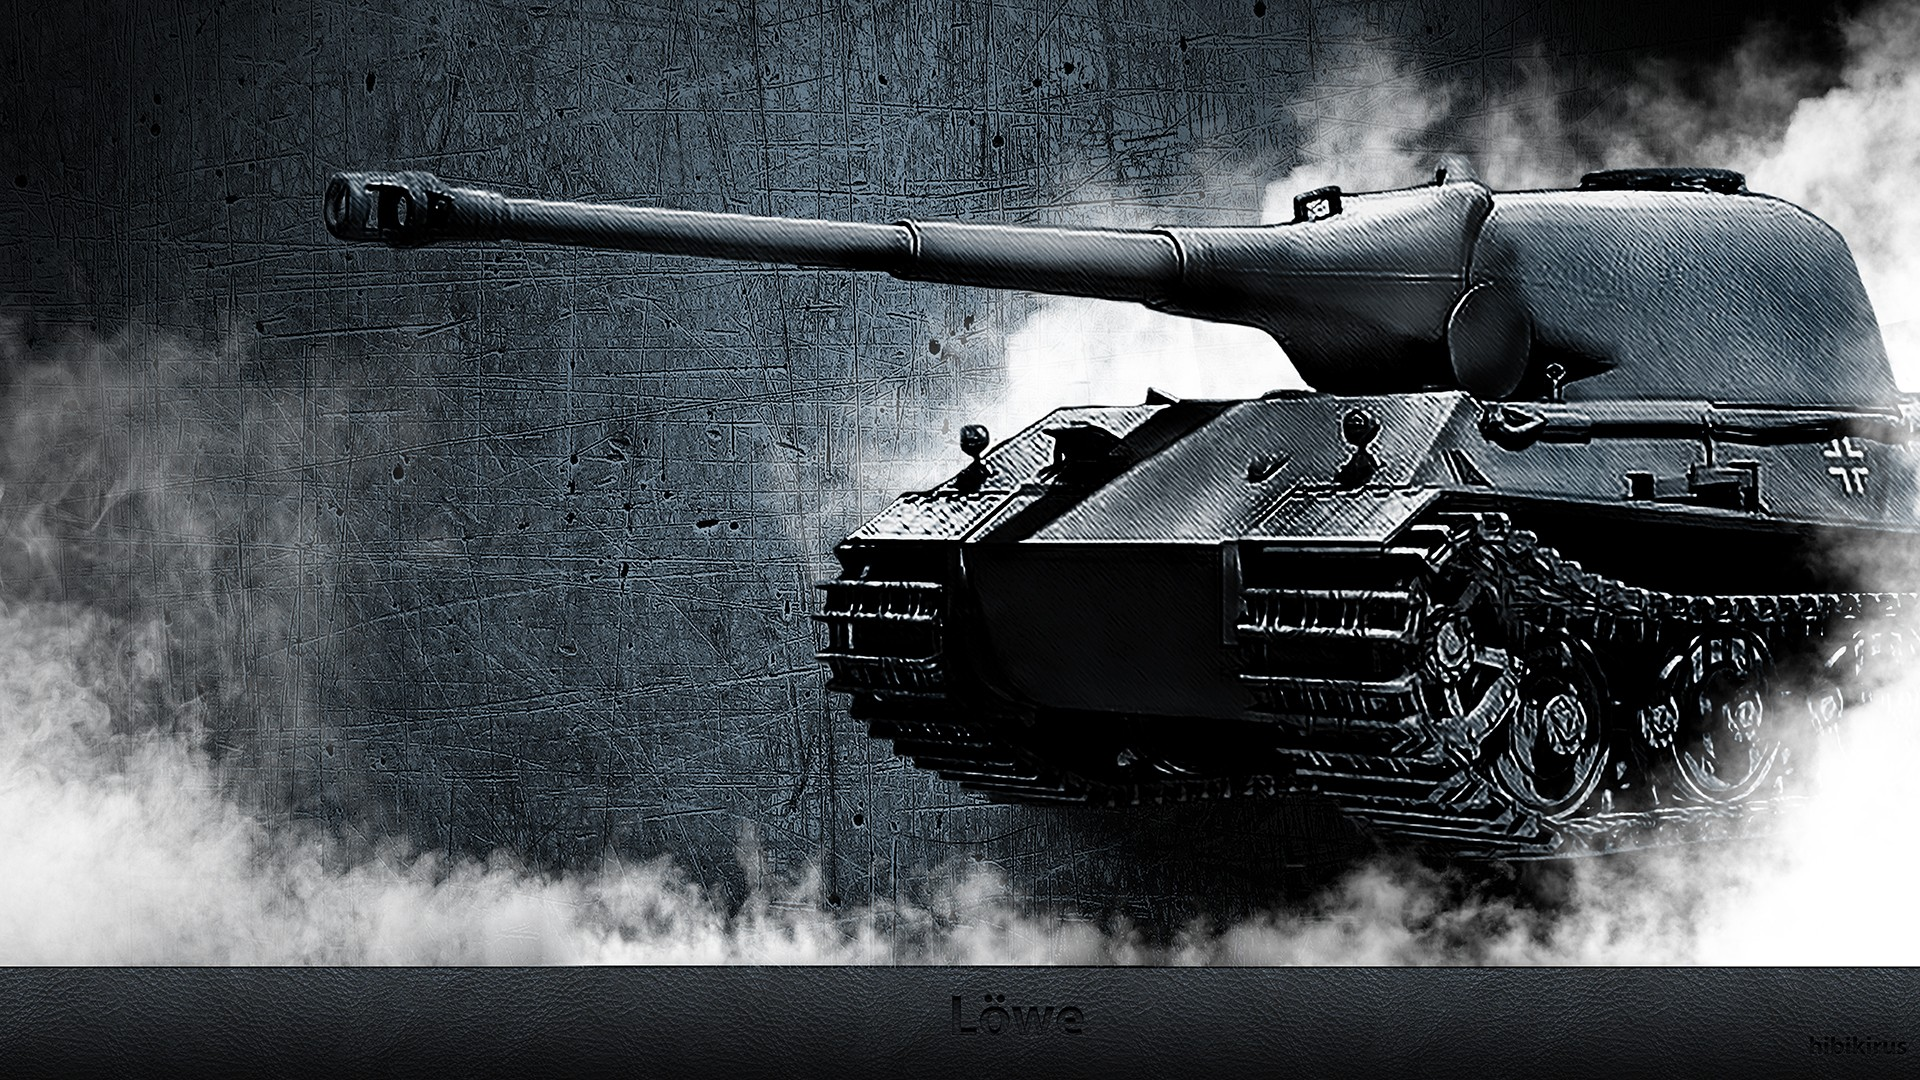 world of tanks computer wallpapers desktop backgrounds